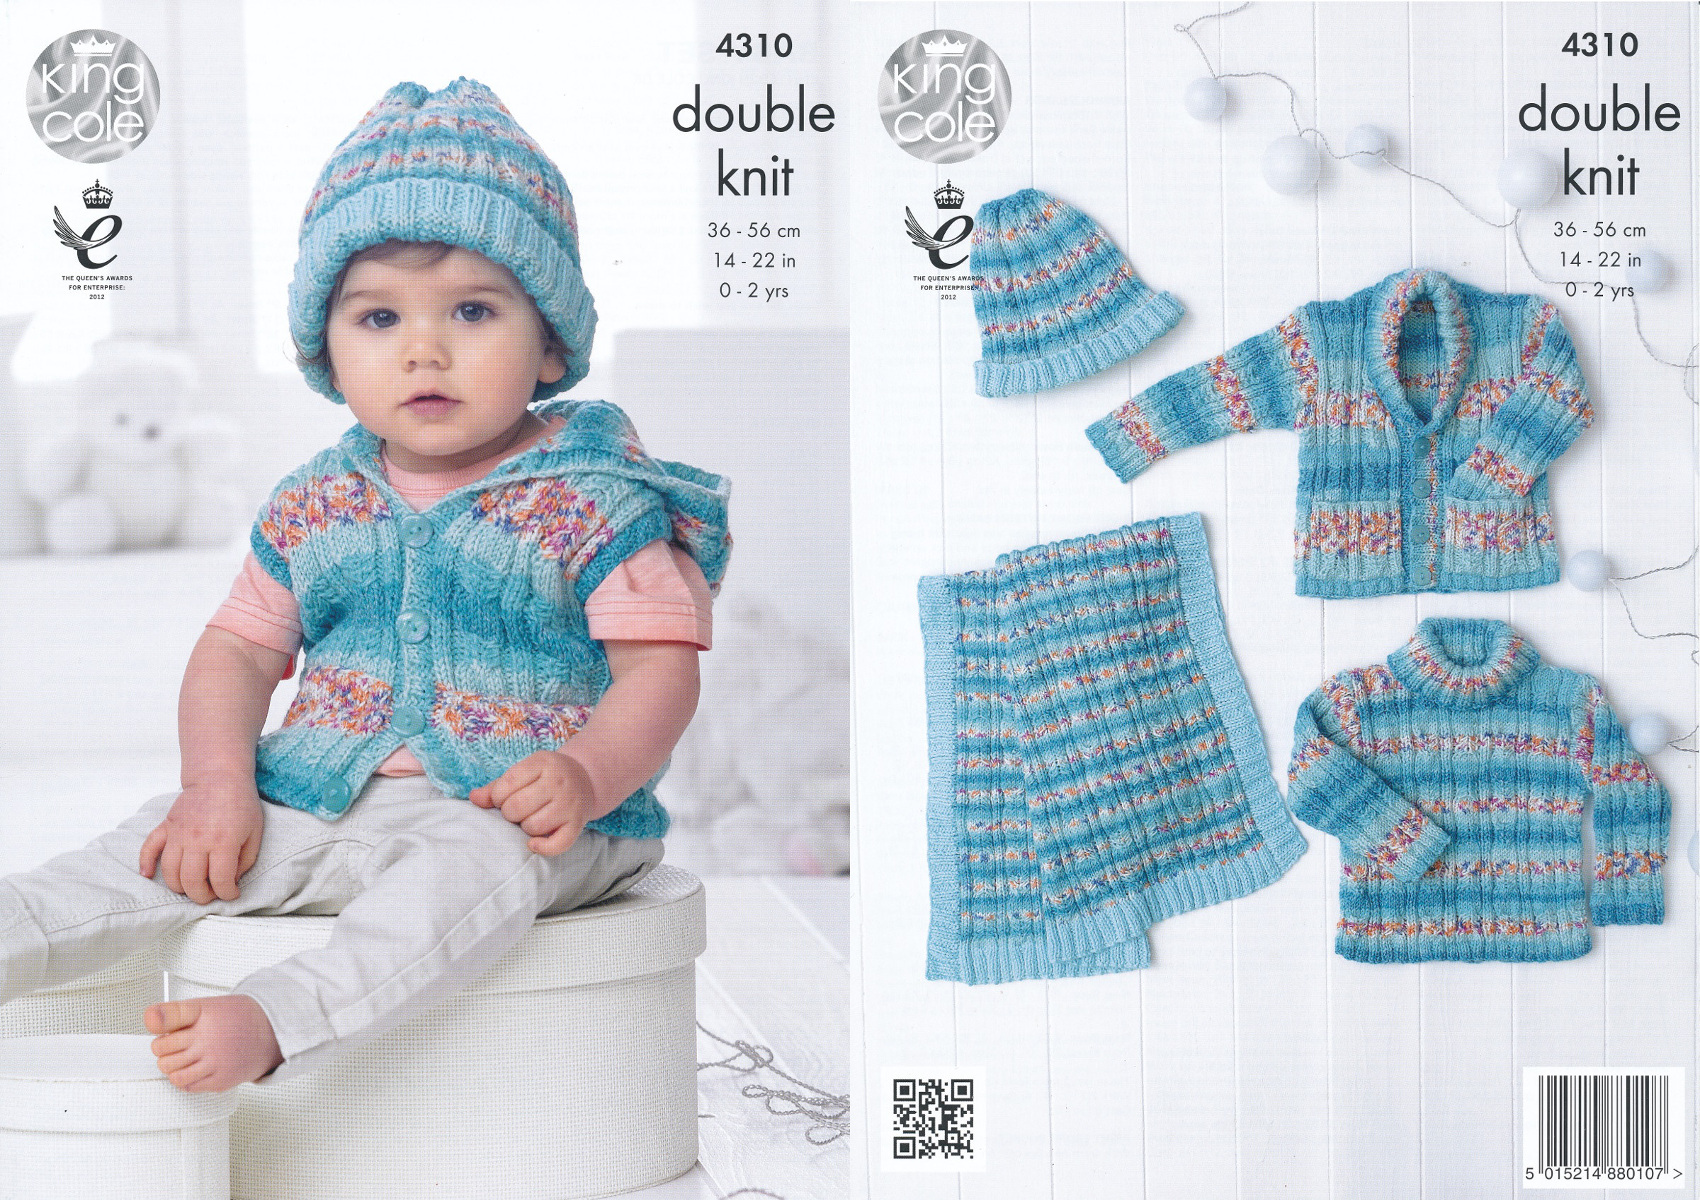 Baby drifter dk knitting pattern king cole jumper waistcoat jacket baby drifter dk knitting pattern king cole jumper waistcoat jacket blanket 4310 bankloansurffo Gallery